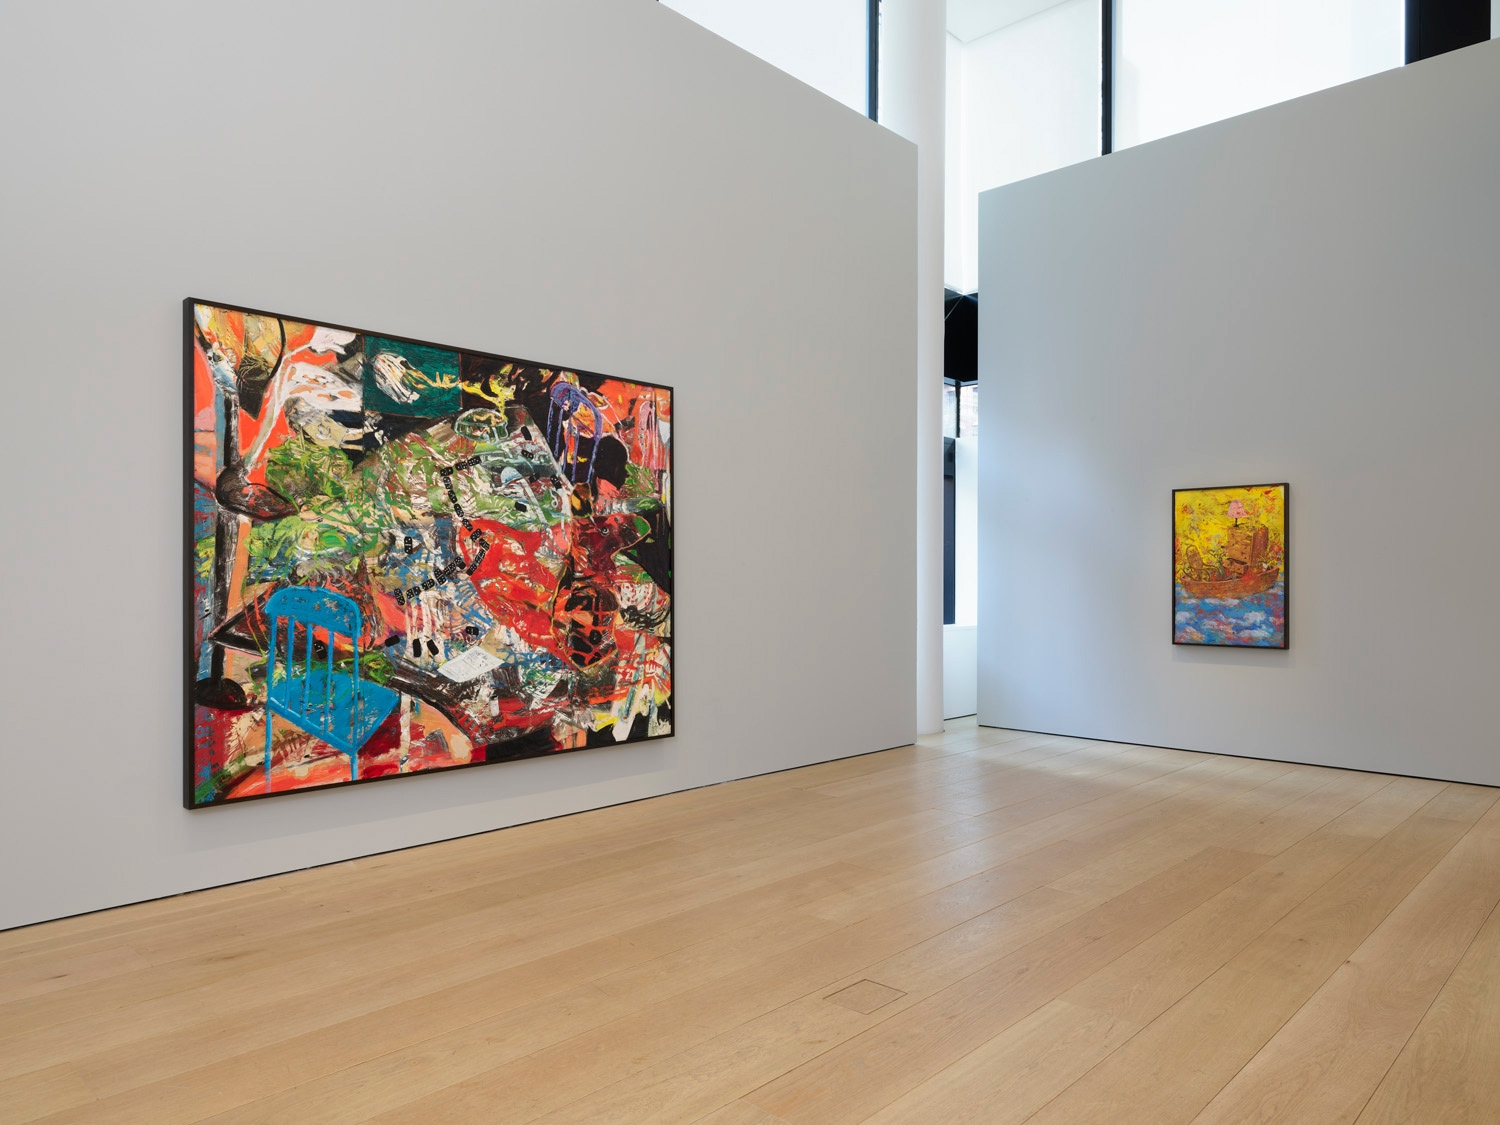 First installation view of the exhibition Angel Otero: The Fortune of Having Been There at Lehmann Maupin in New York